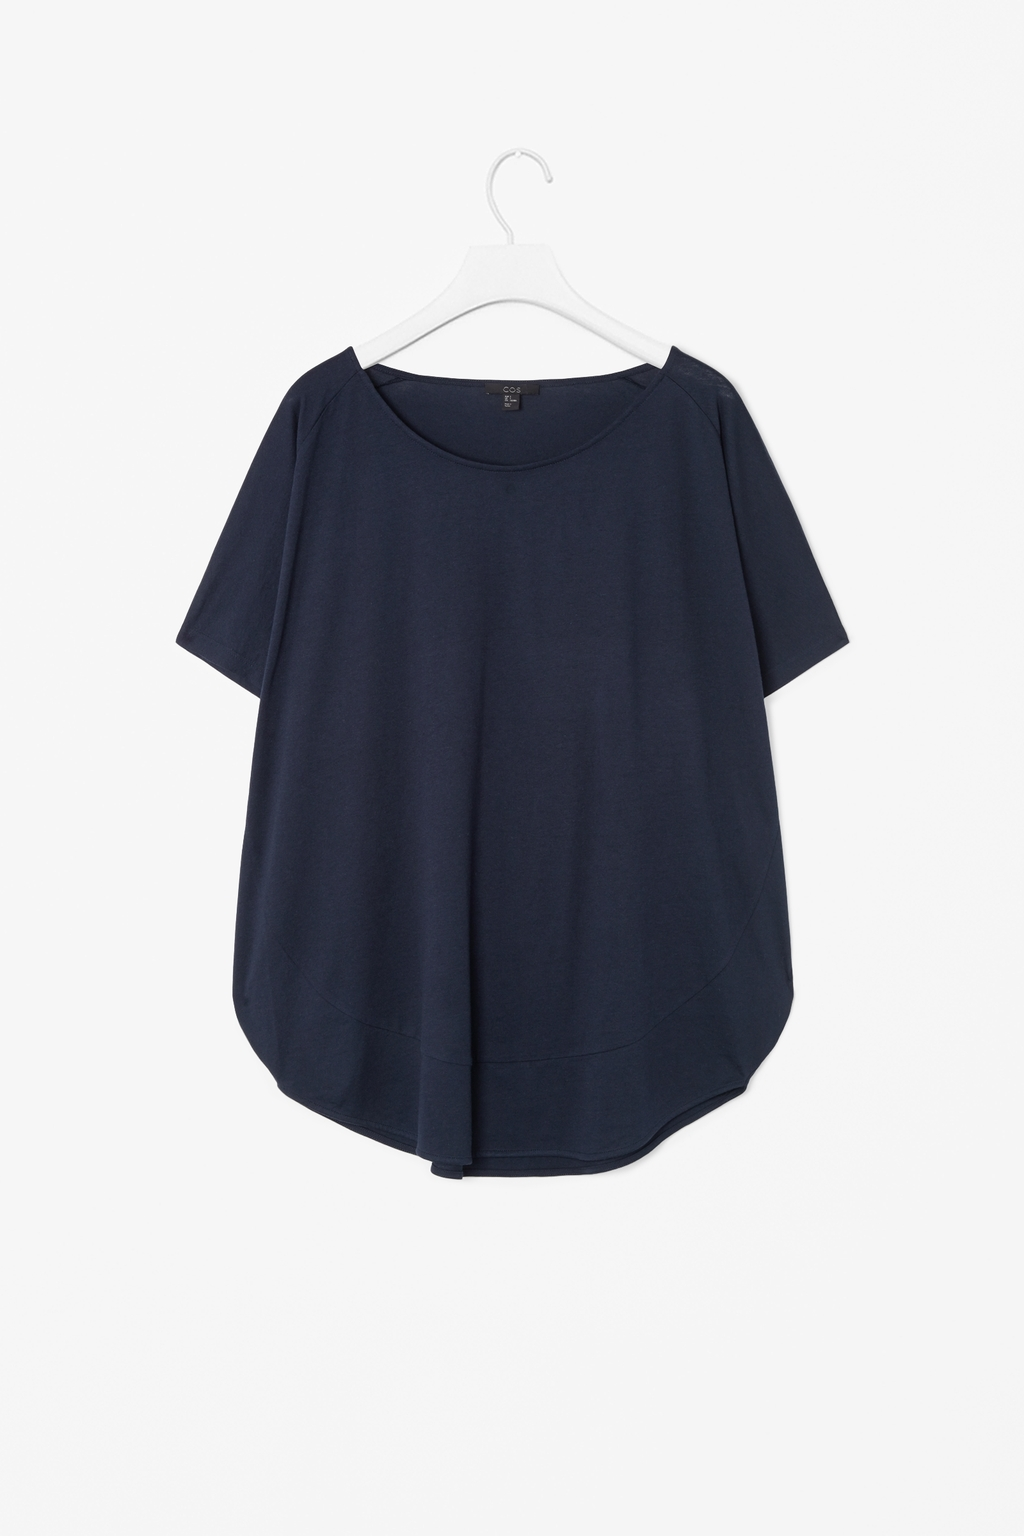 Circle Cut Jersey Top - neckline: round neck; pattern: plain; style: t-shirt; predominant colour: navy; occasions: casual; length: standard; fibres: cotton - mix; fit: loose; sleeve length: short sleeve; sleeve style: standard; pattern type: fabric; texture group: jersey - stretchy/drapey; season: s/s 2014